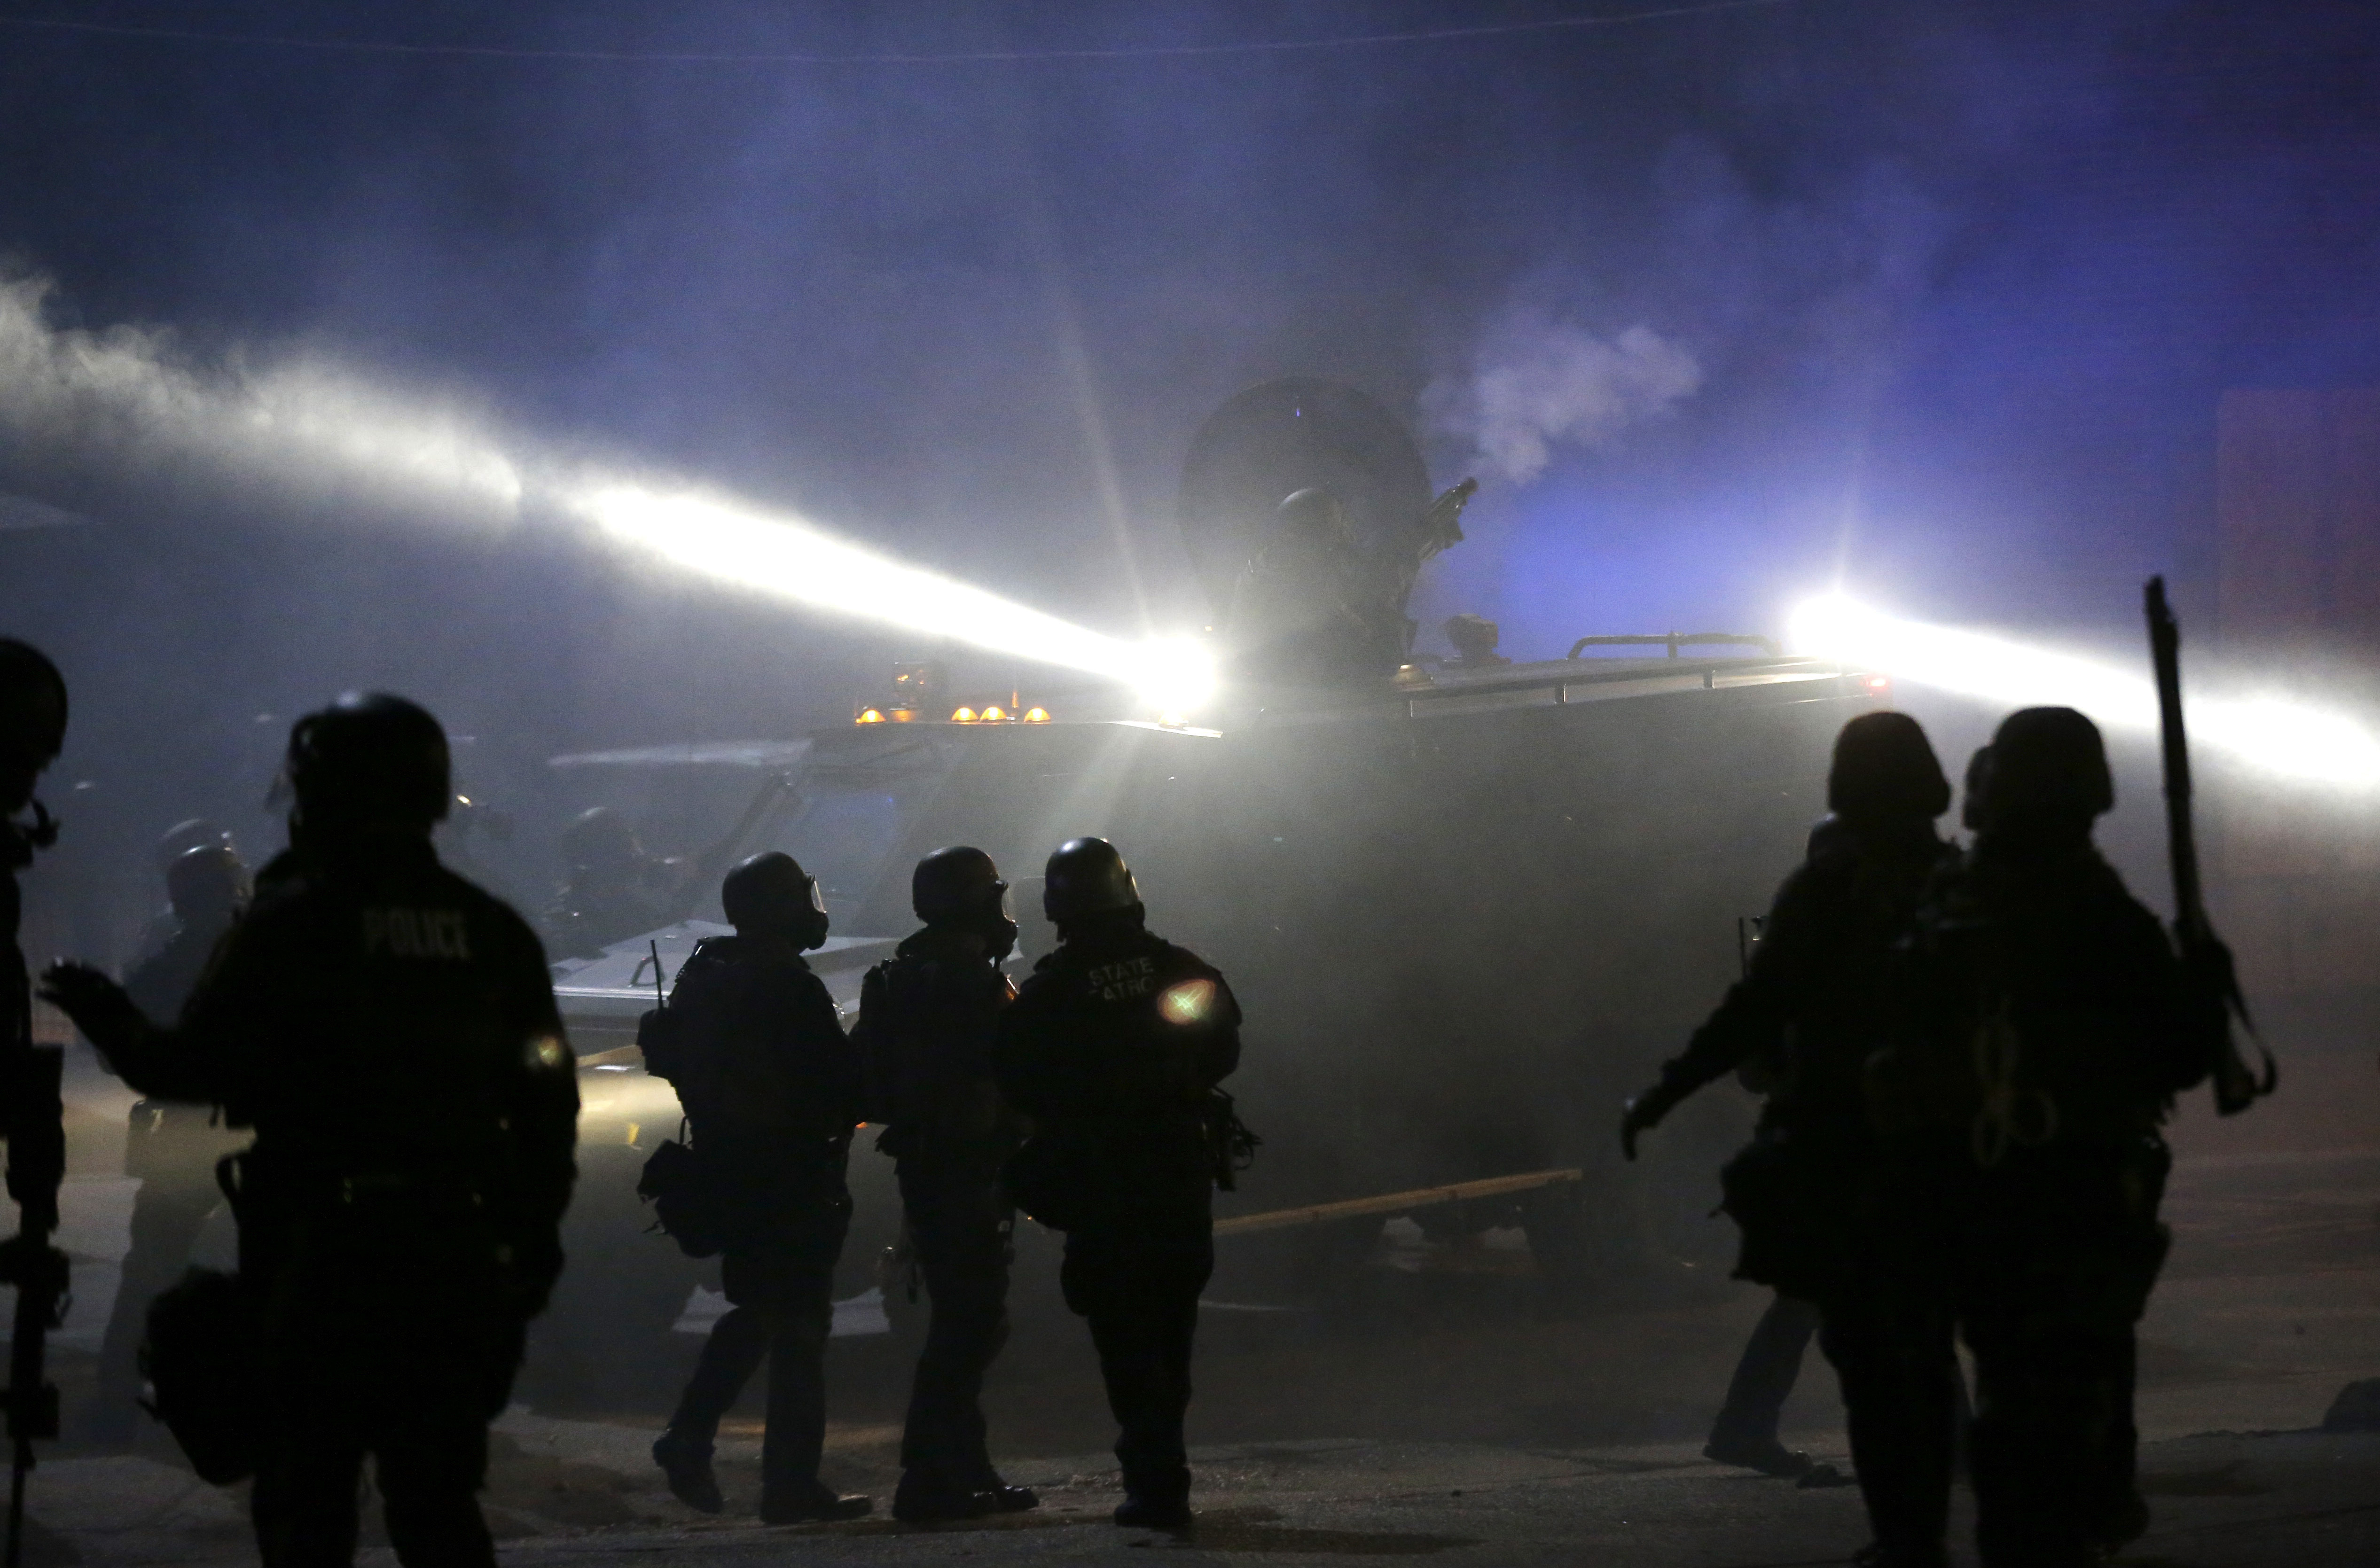 Police in riot gear stand around an armored vehicle as smoke fills the streets of Ferguson, Mo., in November 2014. Charlie Riedel/AP